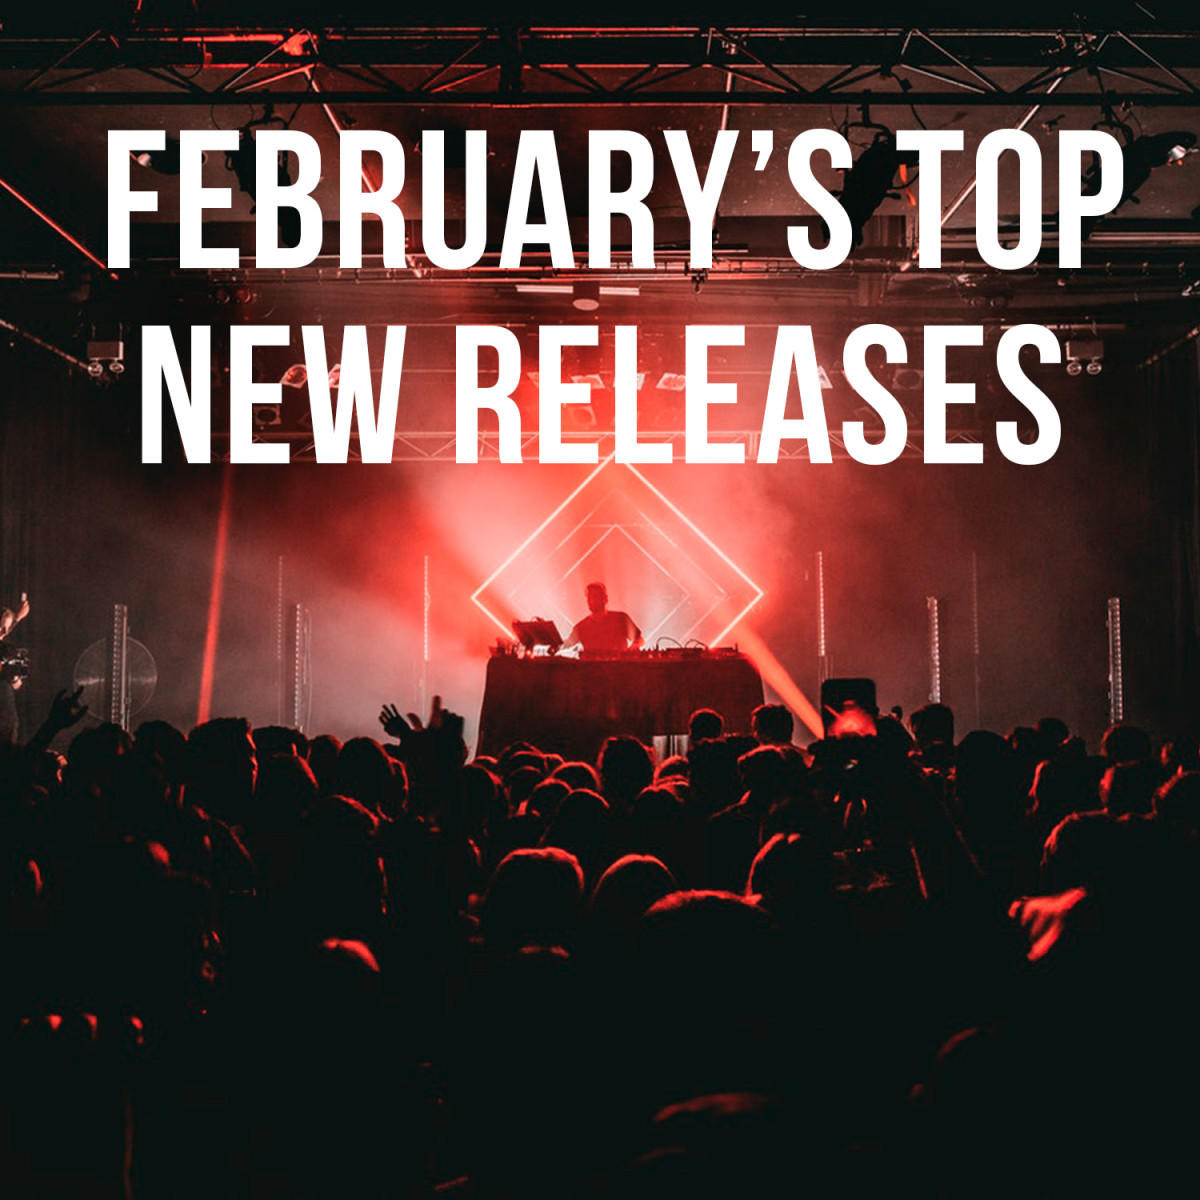 Catch up on February's Love-Filled Top New Releases [Playlist]